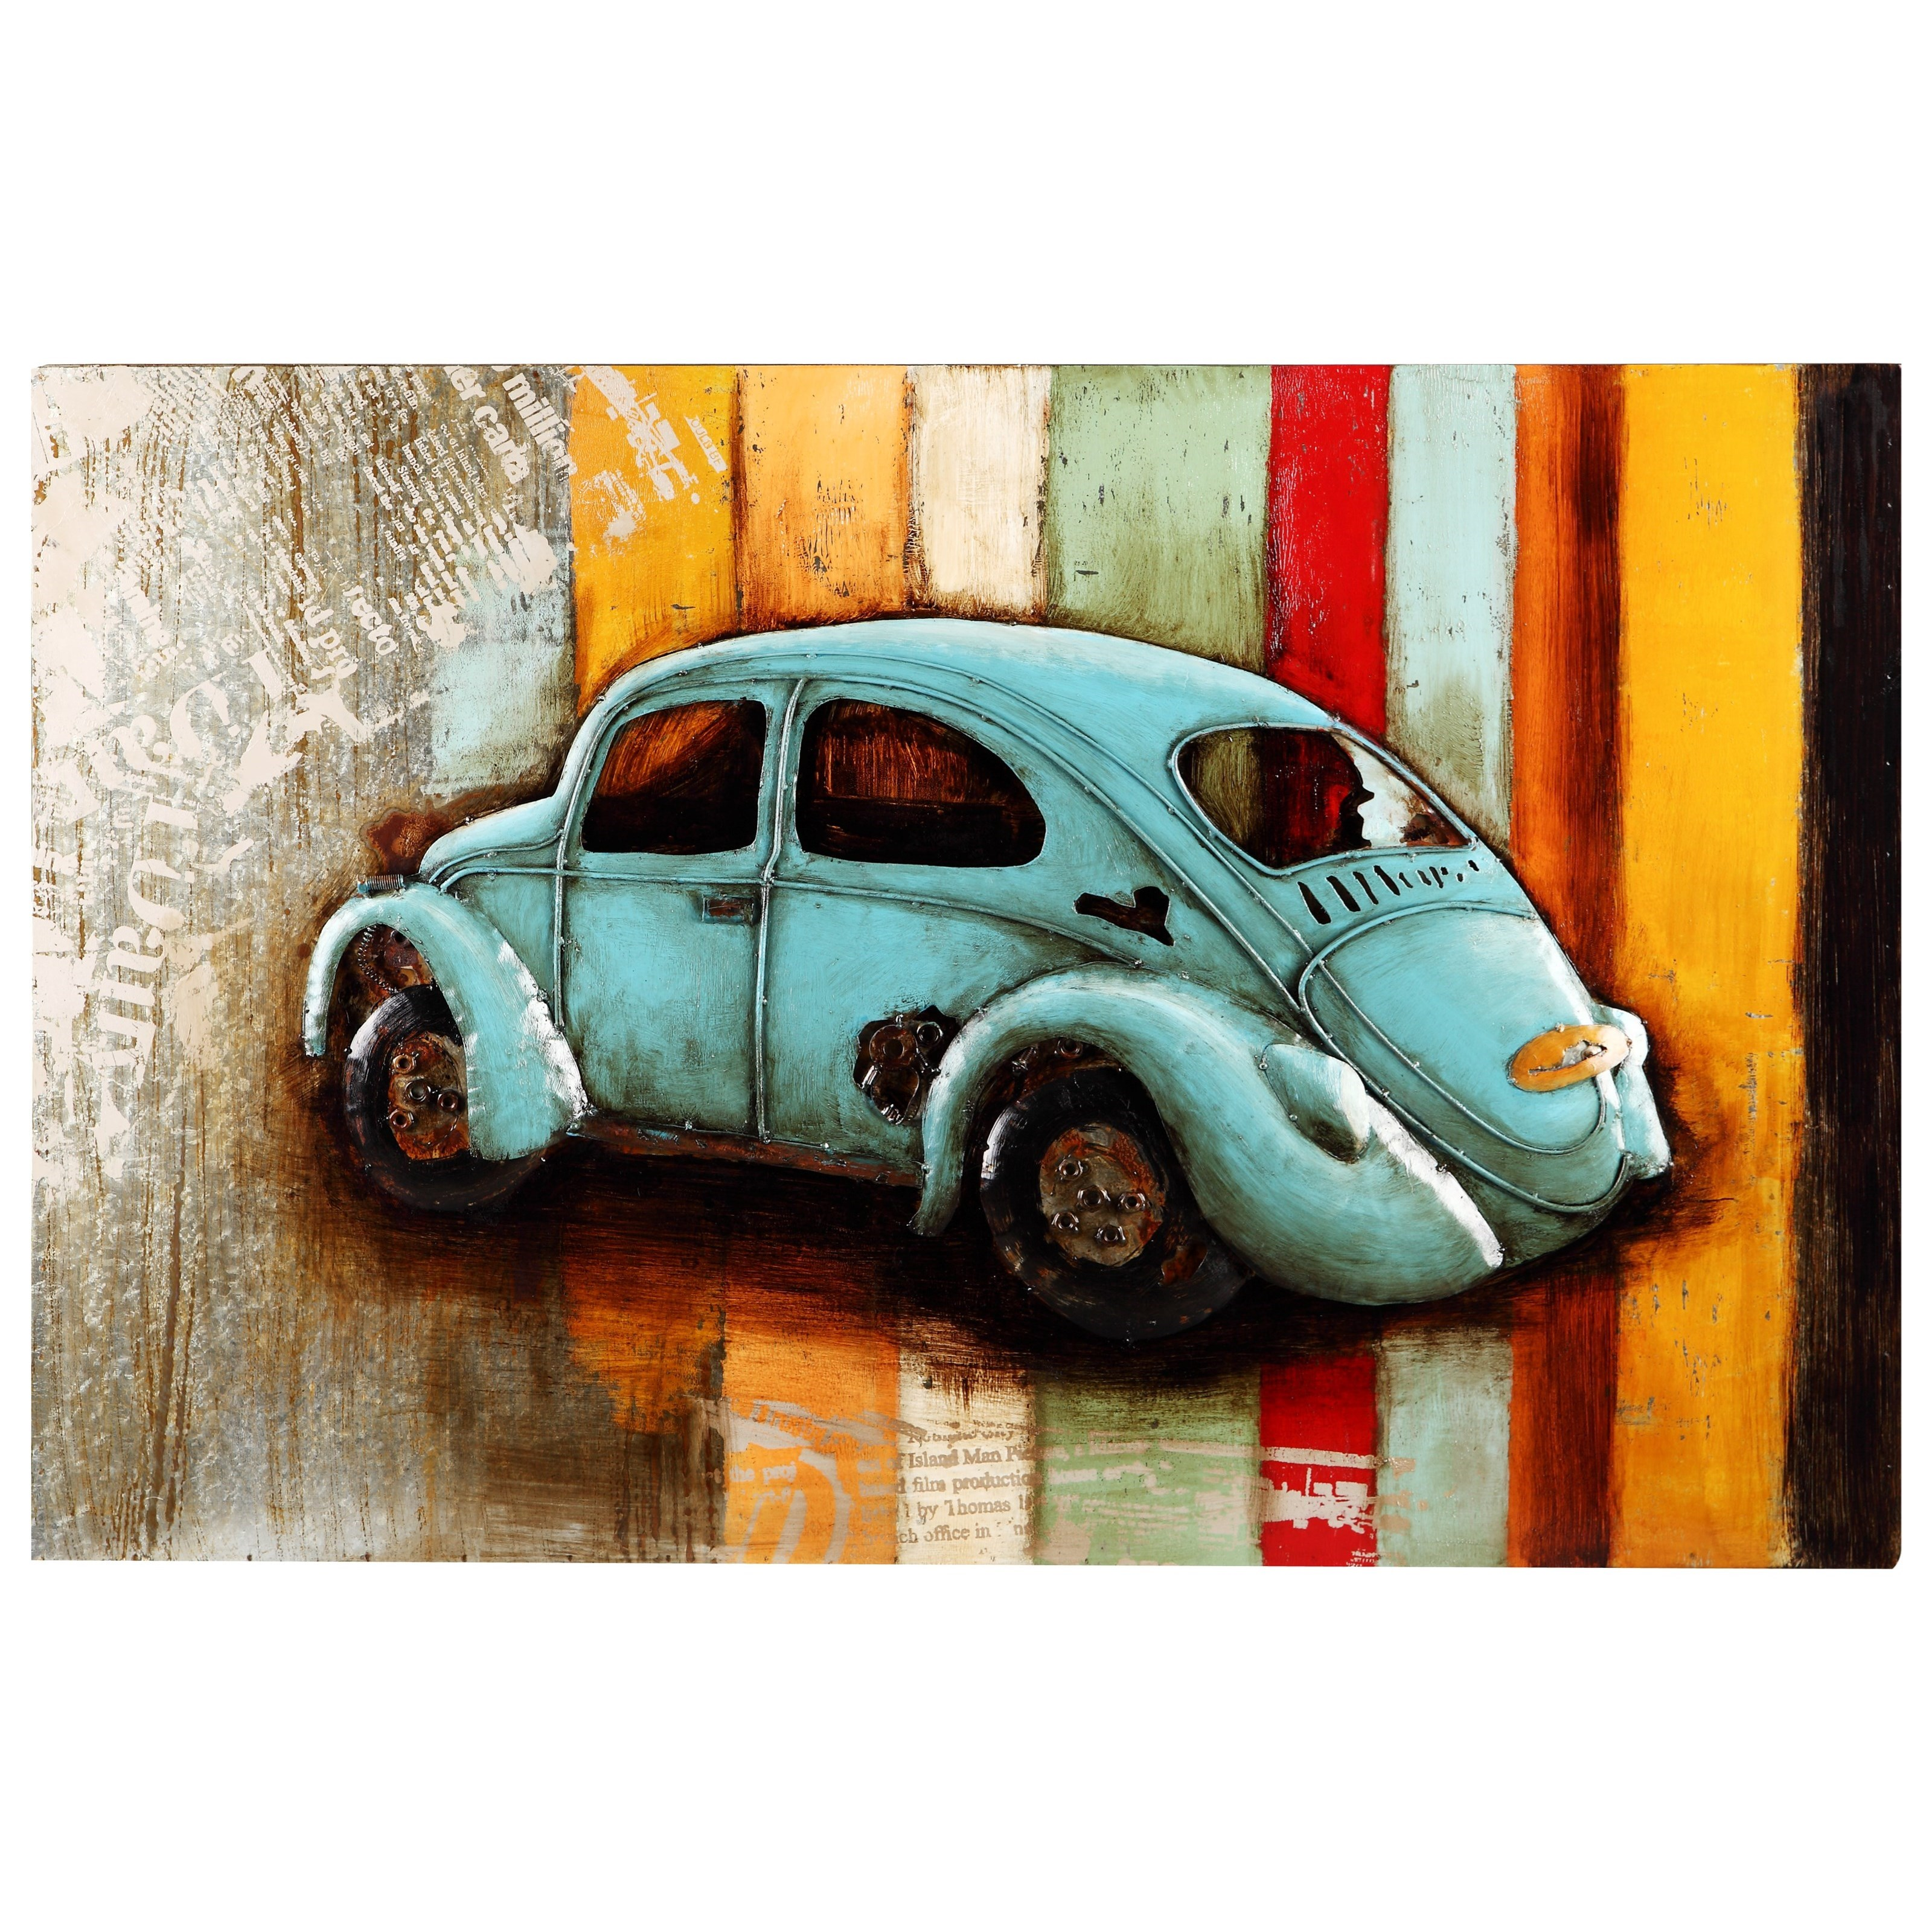 Moe's Home Collection Wall Décor Vintage Beetle Wall Décor - Item Number: PR-1007-37